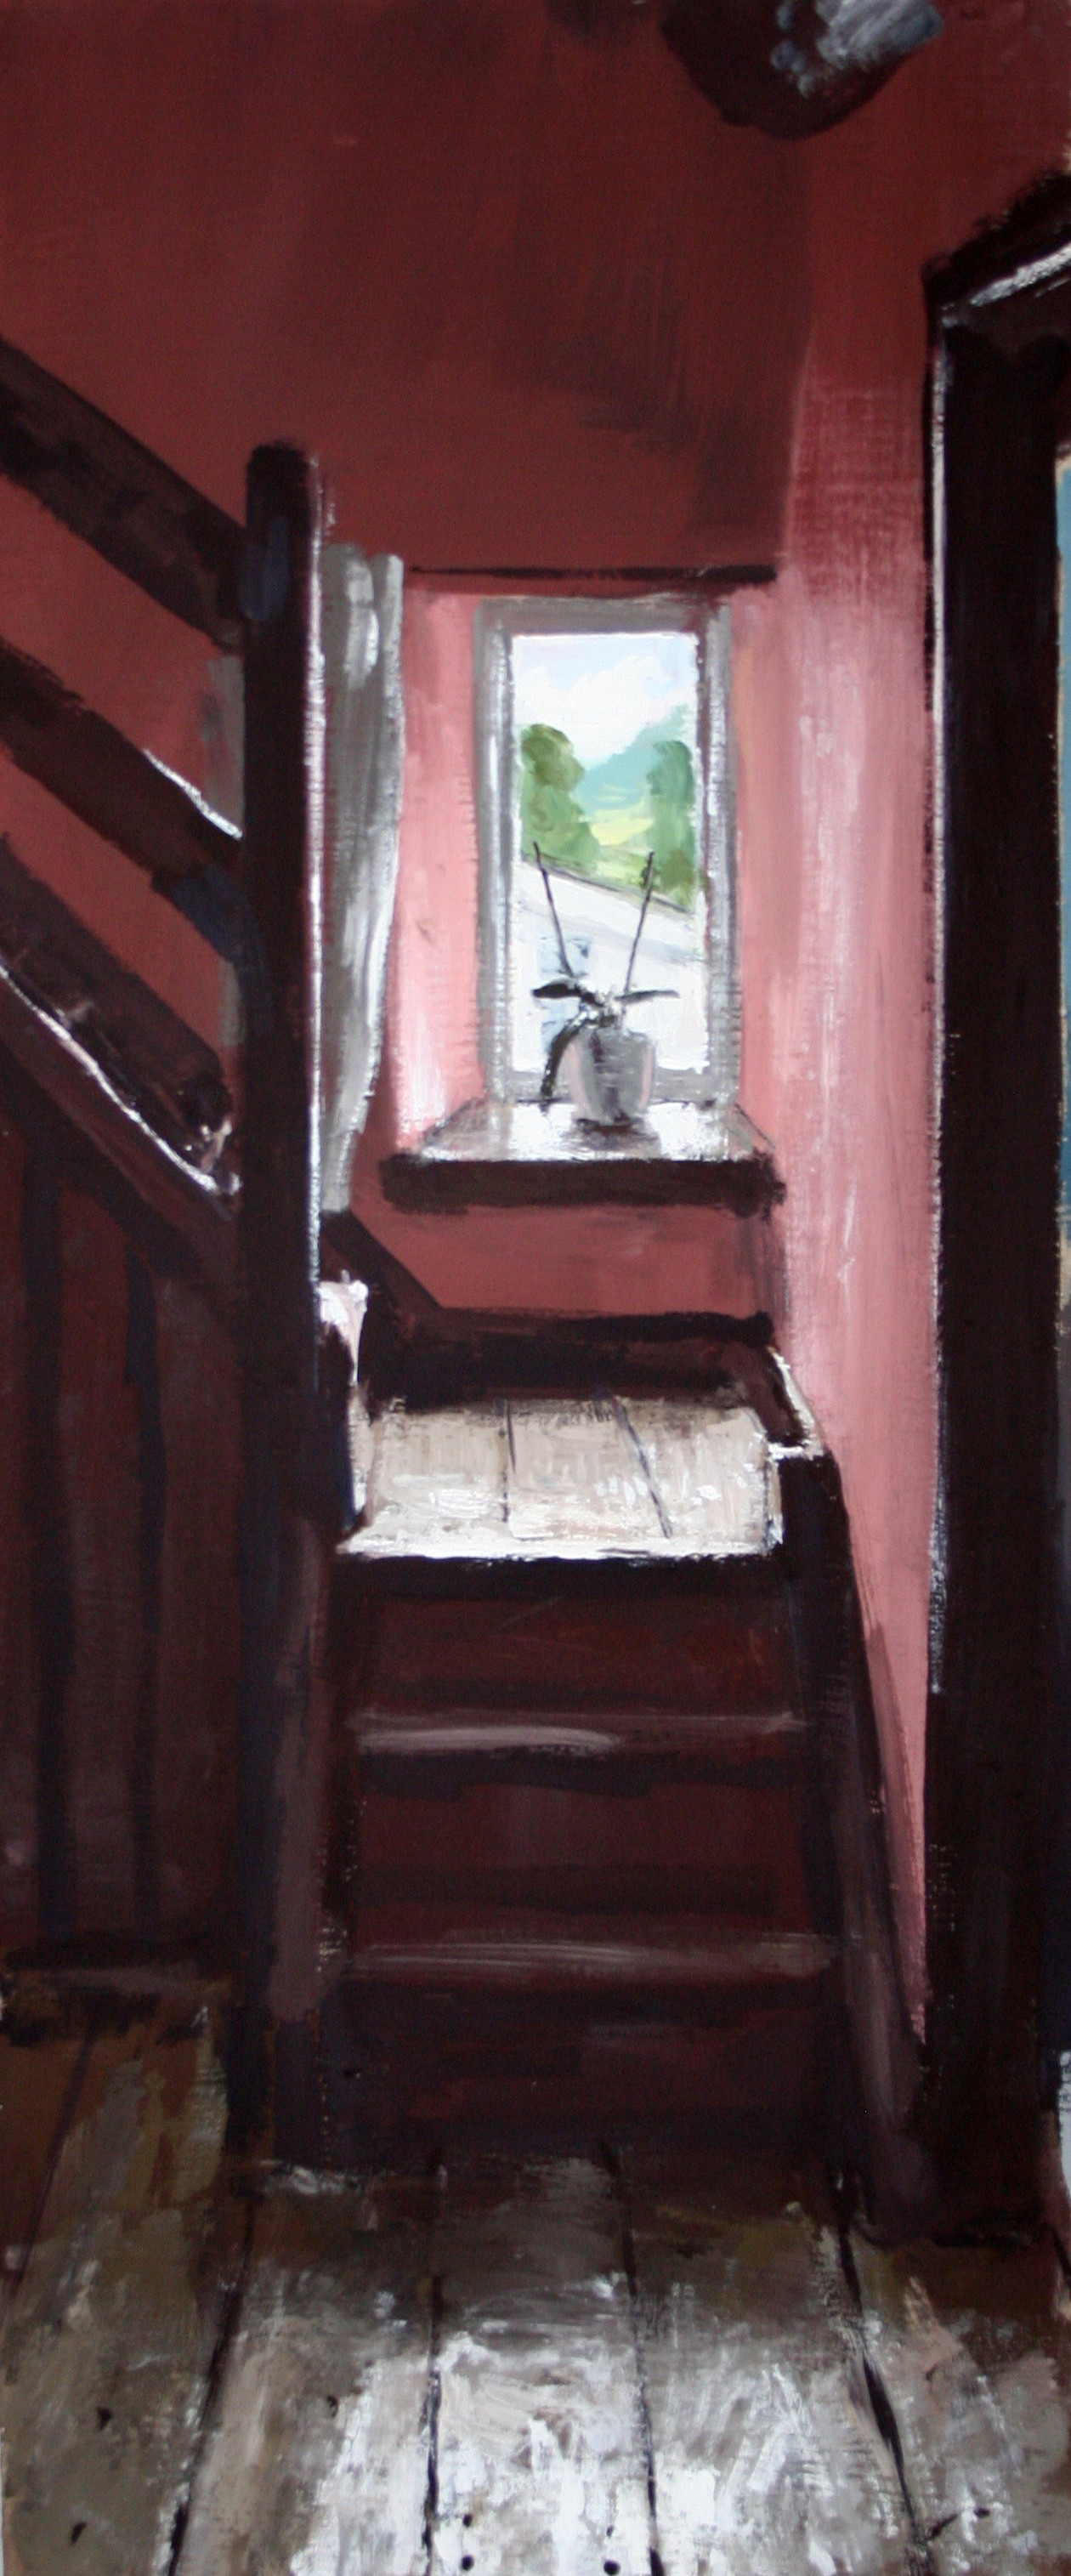 """Matthew Wood """"The Mill house, The back staircase"""" Gaouche on Board (35 x 15 cm)"""